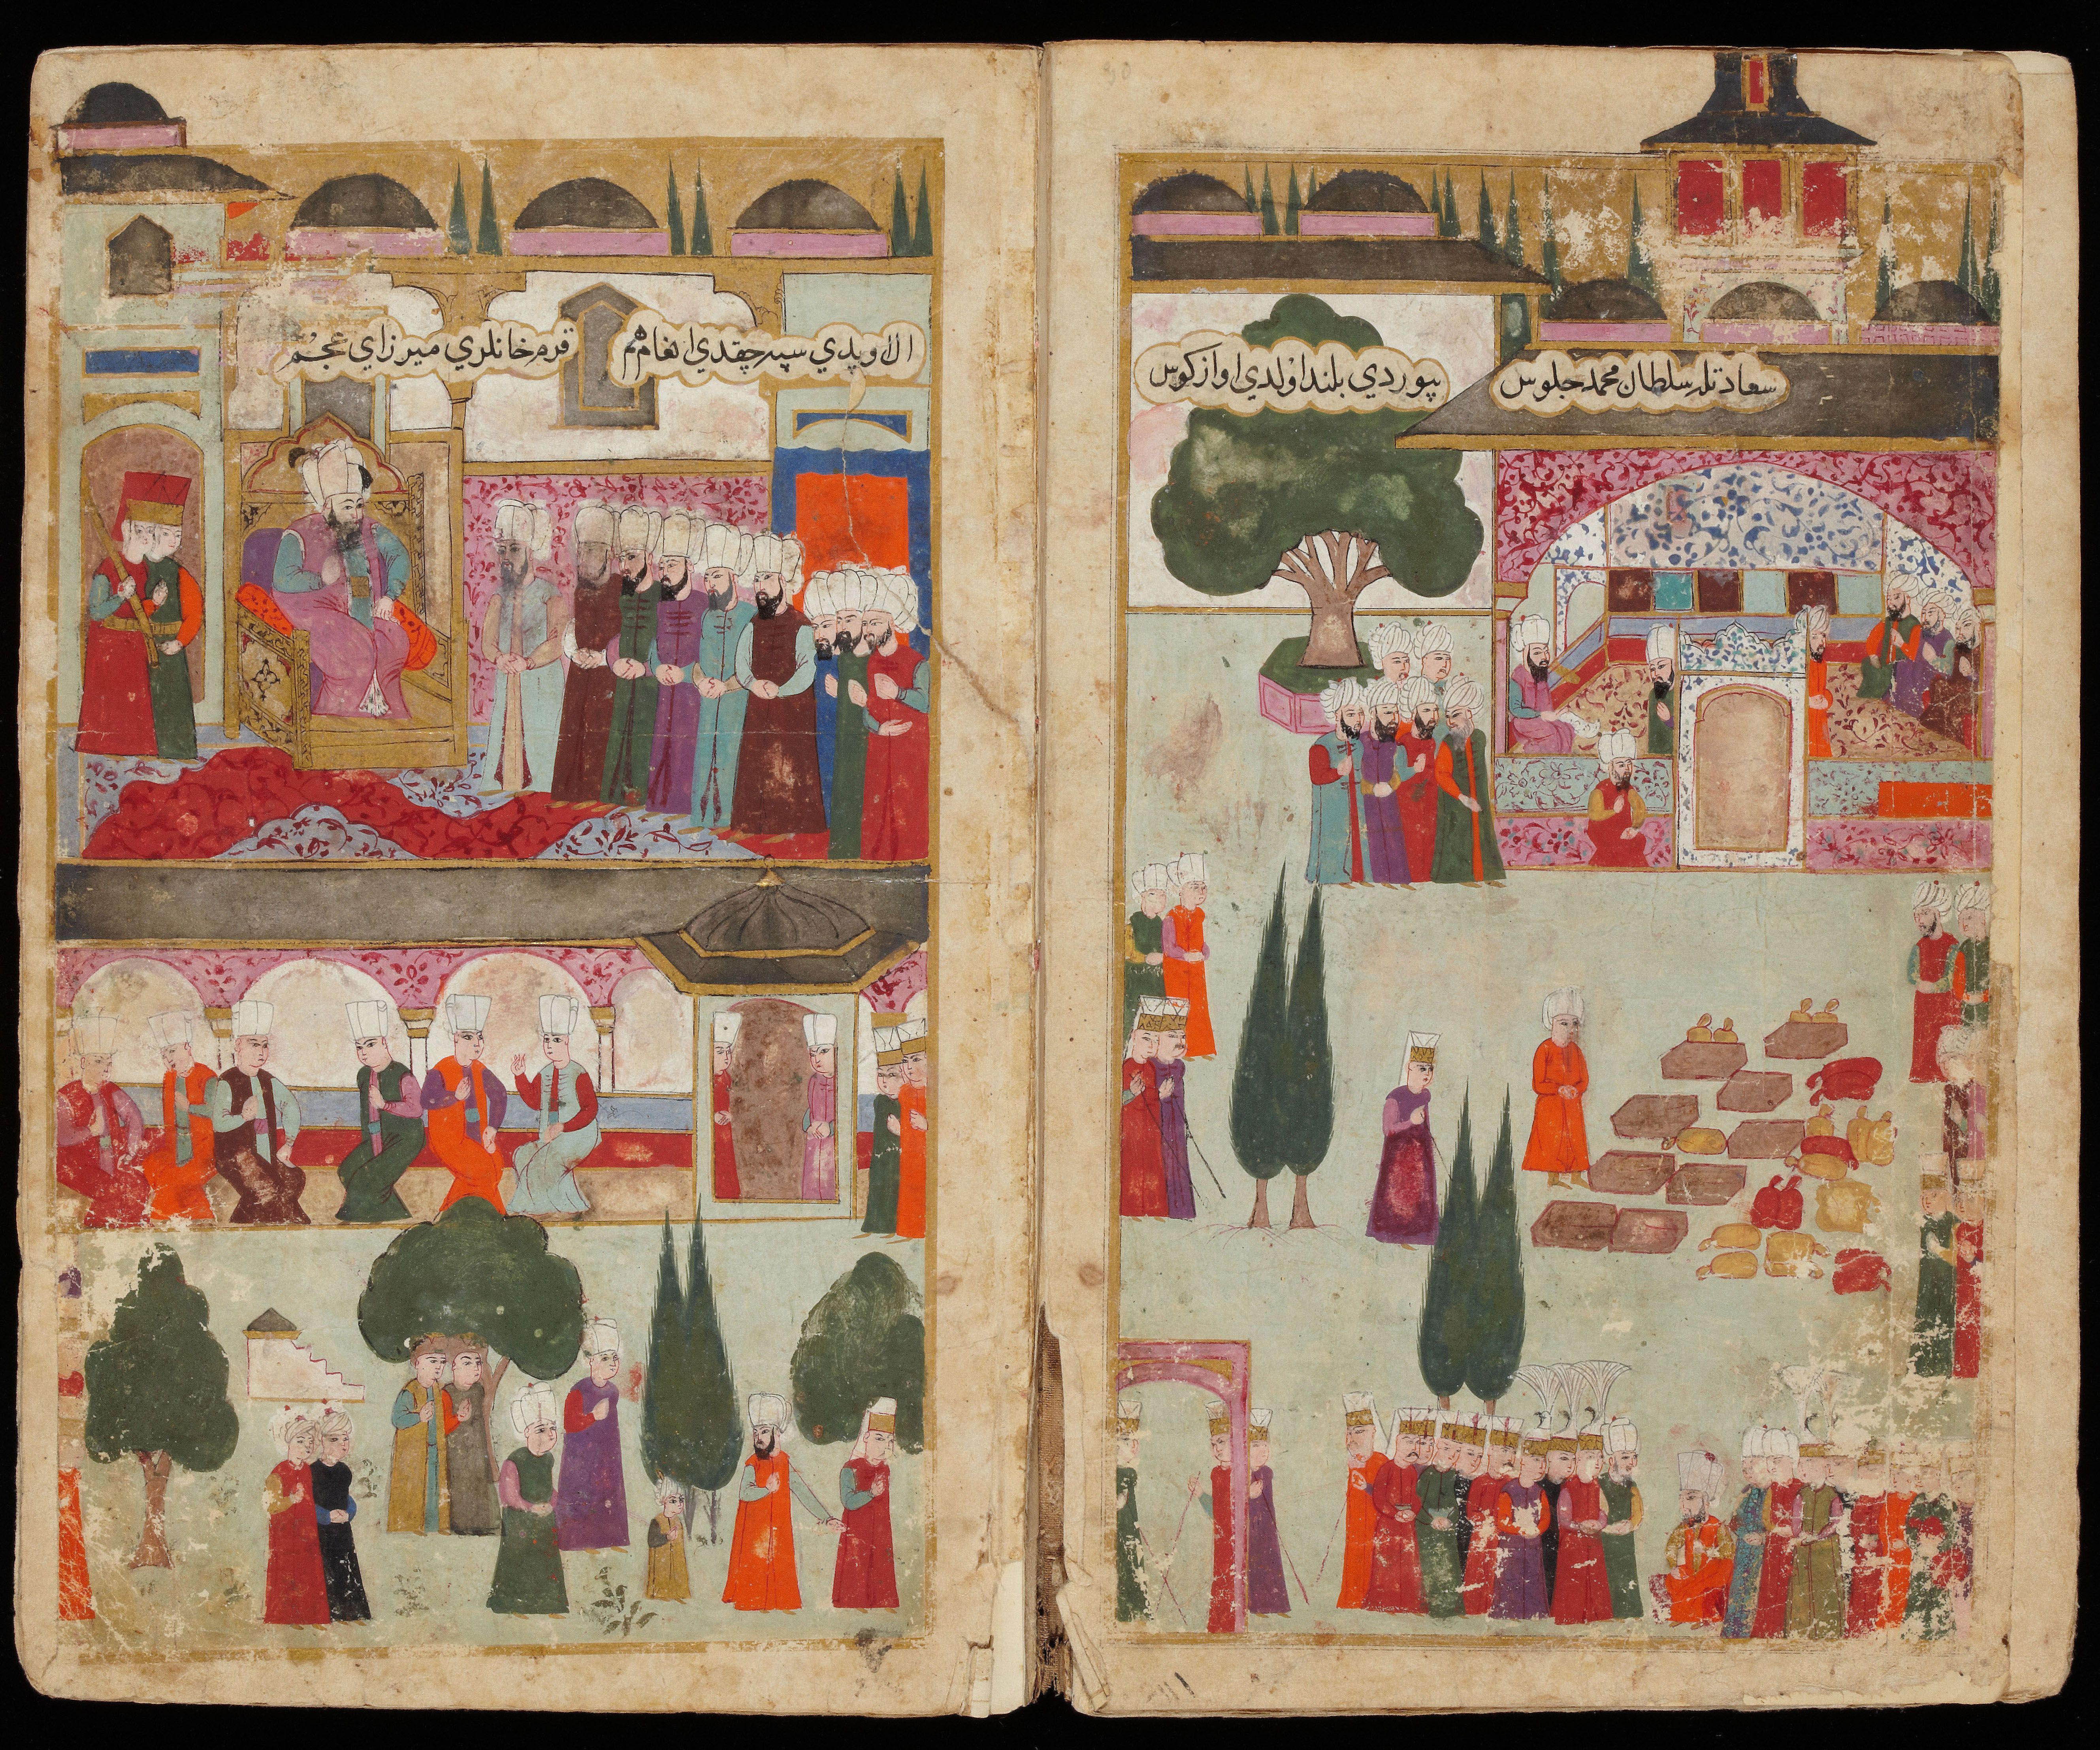 Mehmed III's Coronation in the Topkapi Palace in 1595 (From Manuscript Mehmed III's Campaign in Hungary)